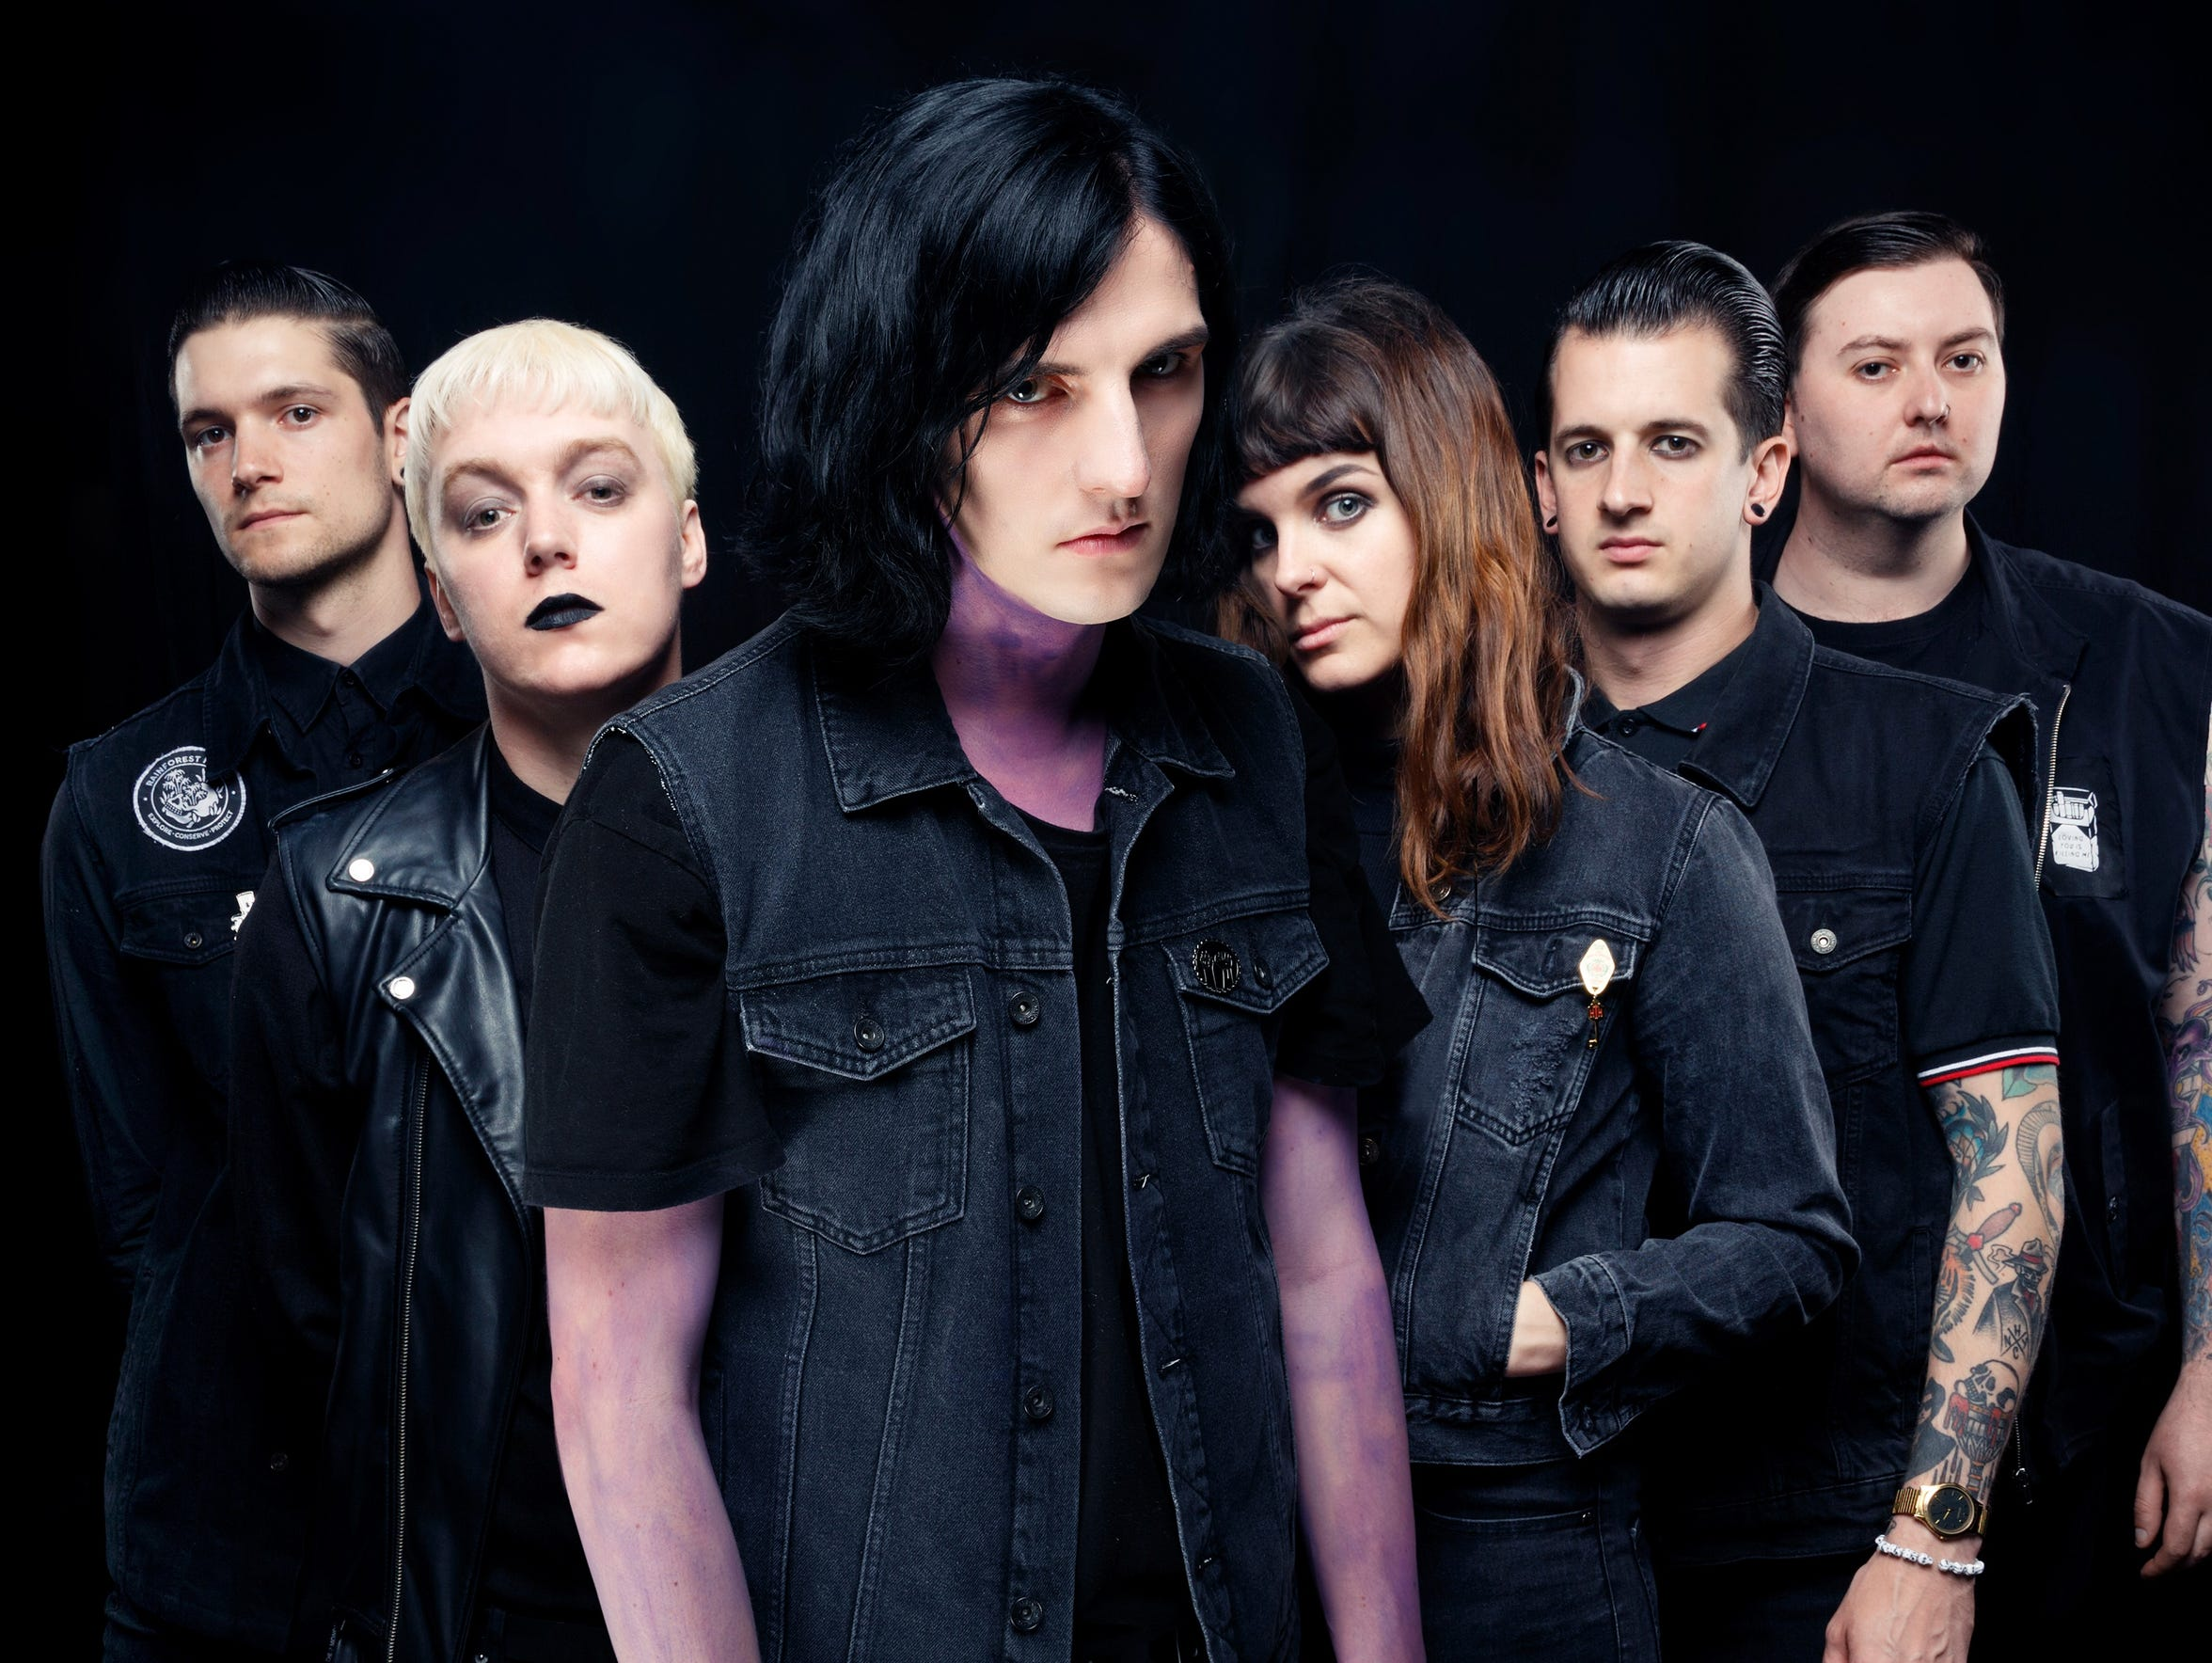 Creeper, an English horror punk band, are on tour with